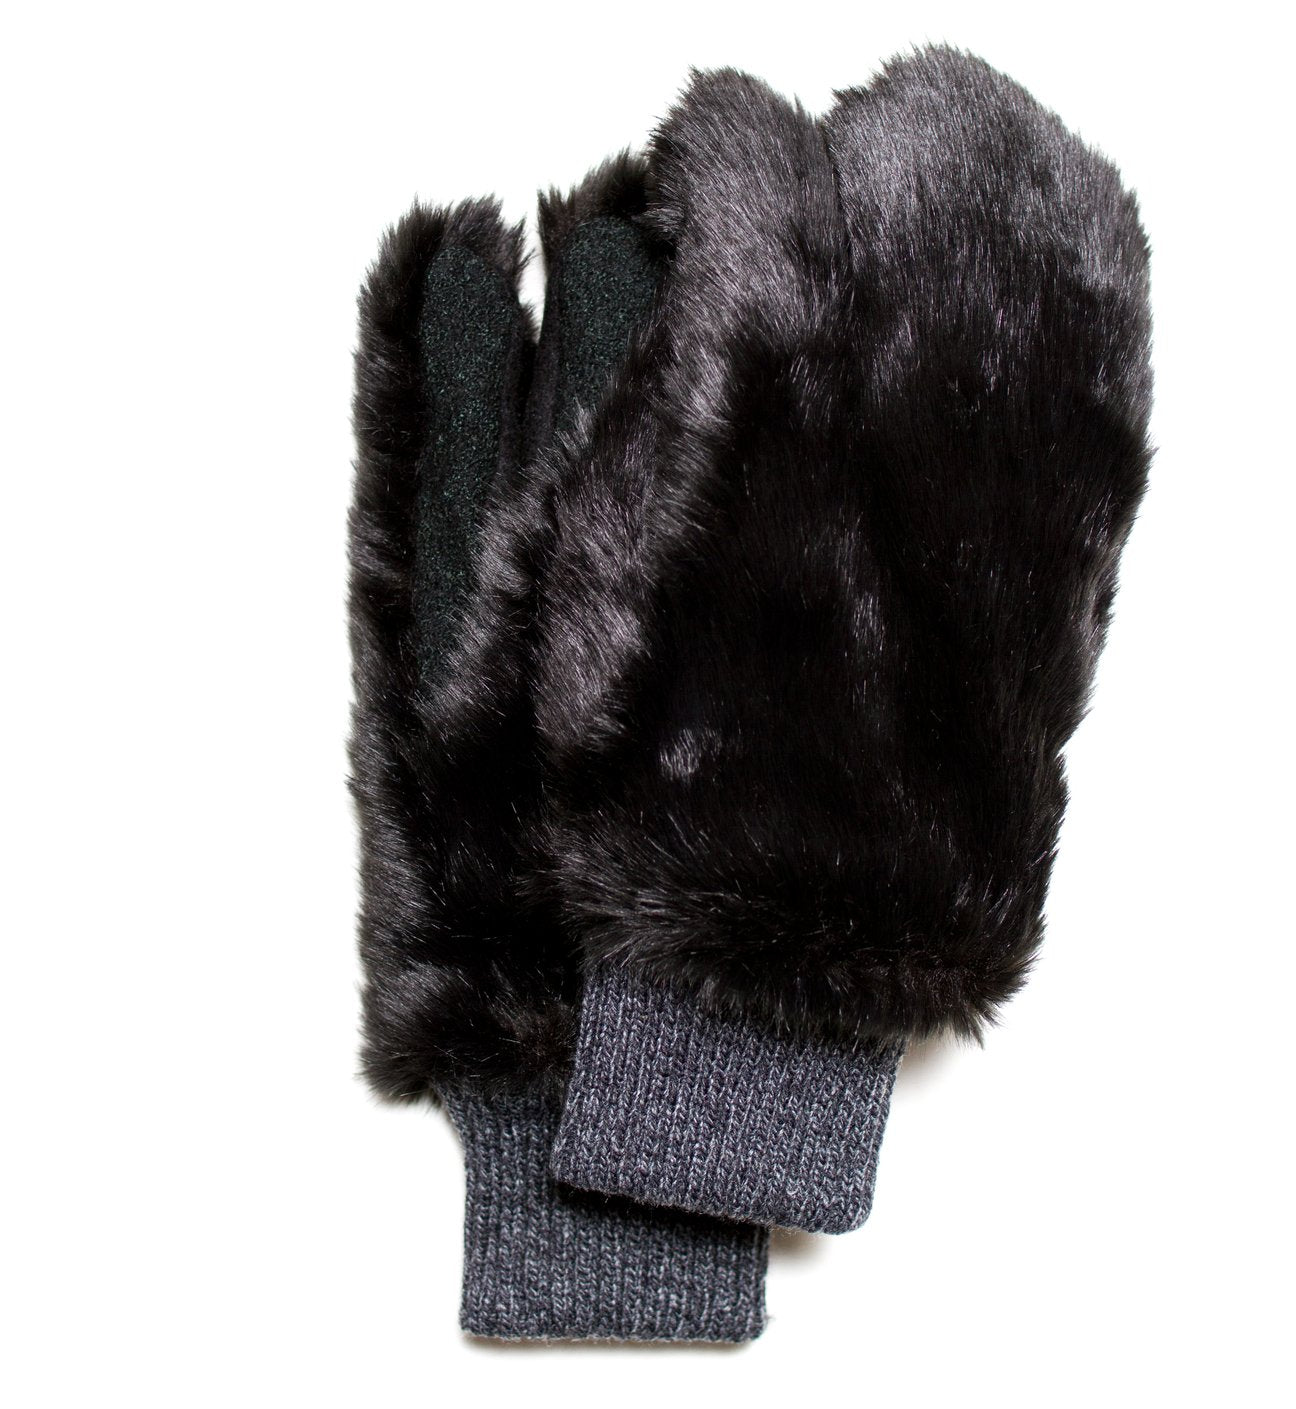 BEAR Faux Fur Gloves